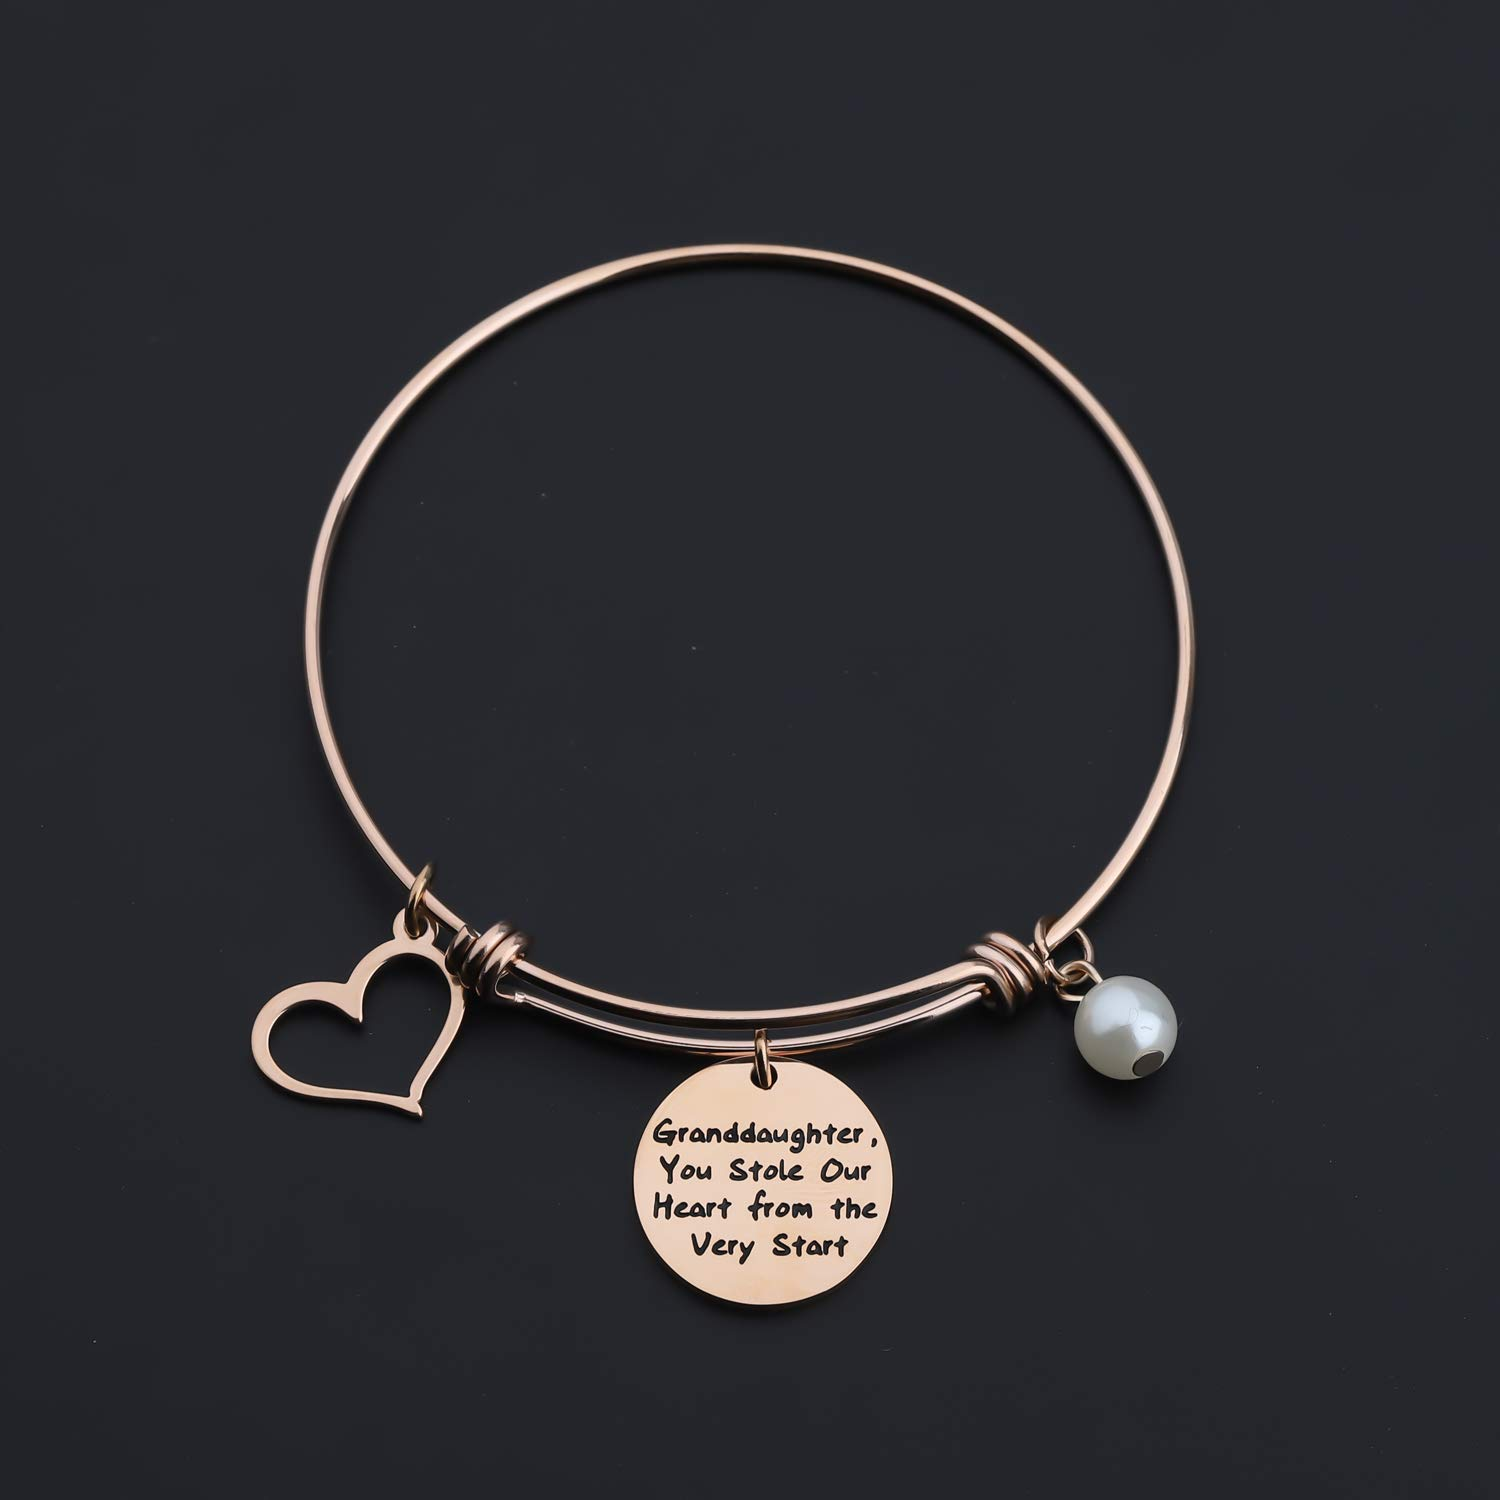 Zuo Bao Granddaughter Jewelry Gift For Her You Stole Our Heart From The Very Start Bracelet With Heart Charm Jewelry Bracelets Femsa Com